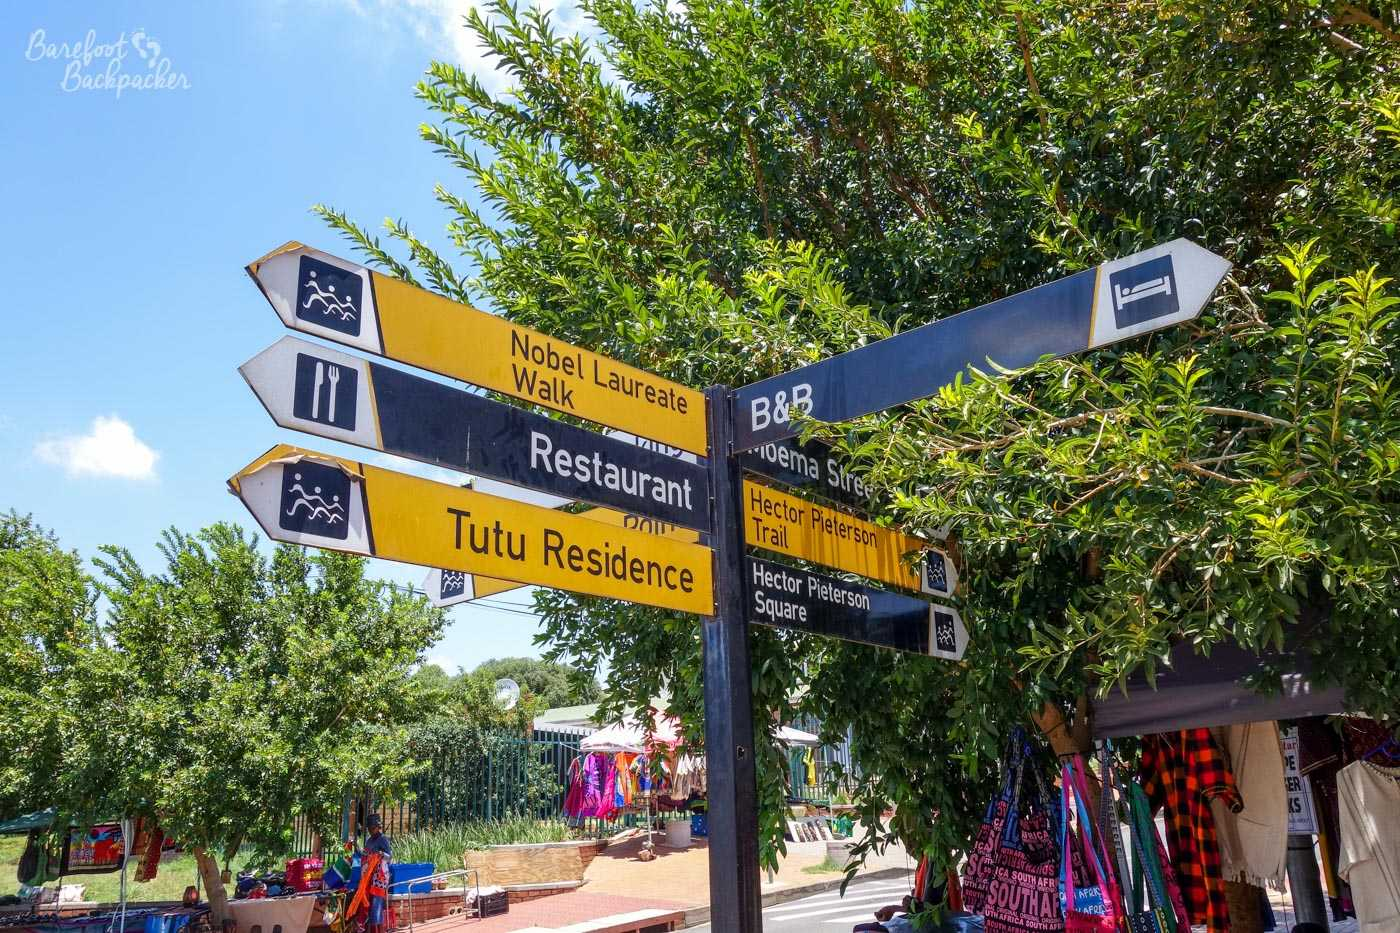 Signpost in central Soweto showing directions to Tutu's House and Hector Pieterson Memorial, amongst other things